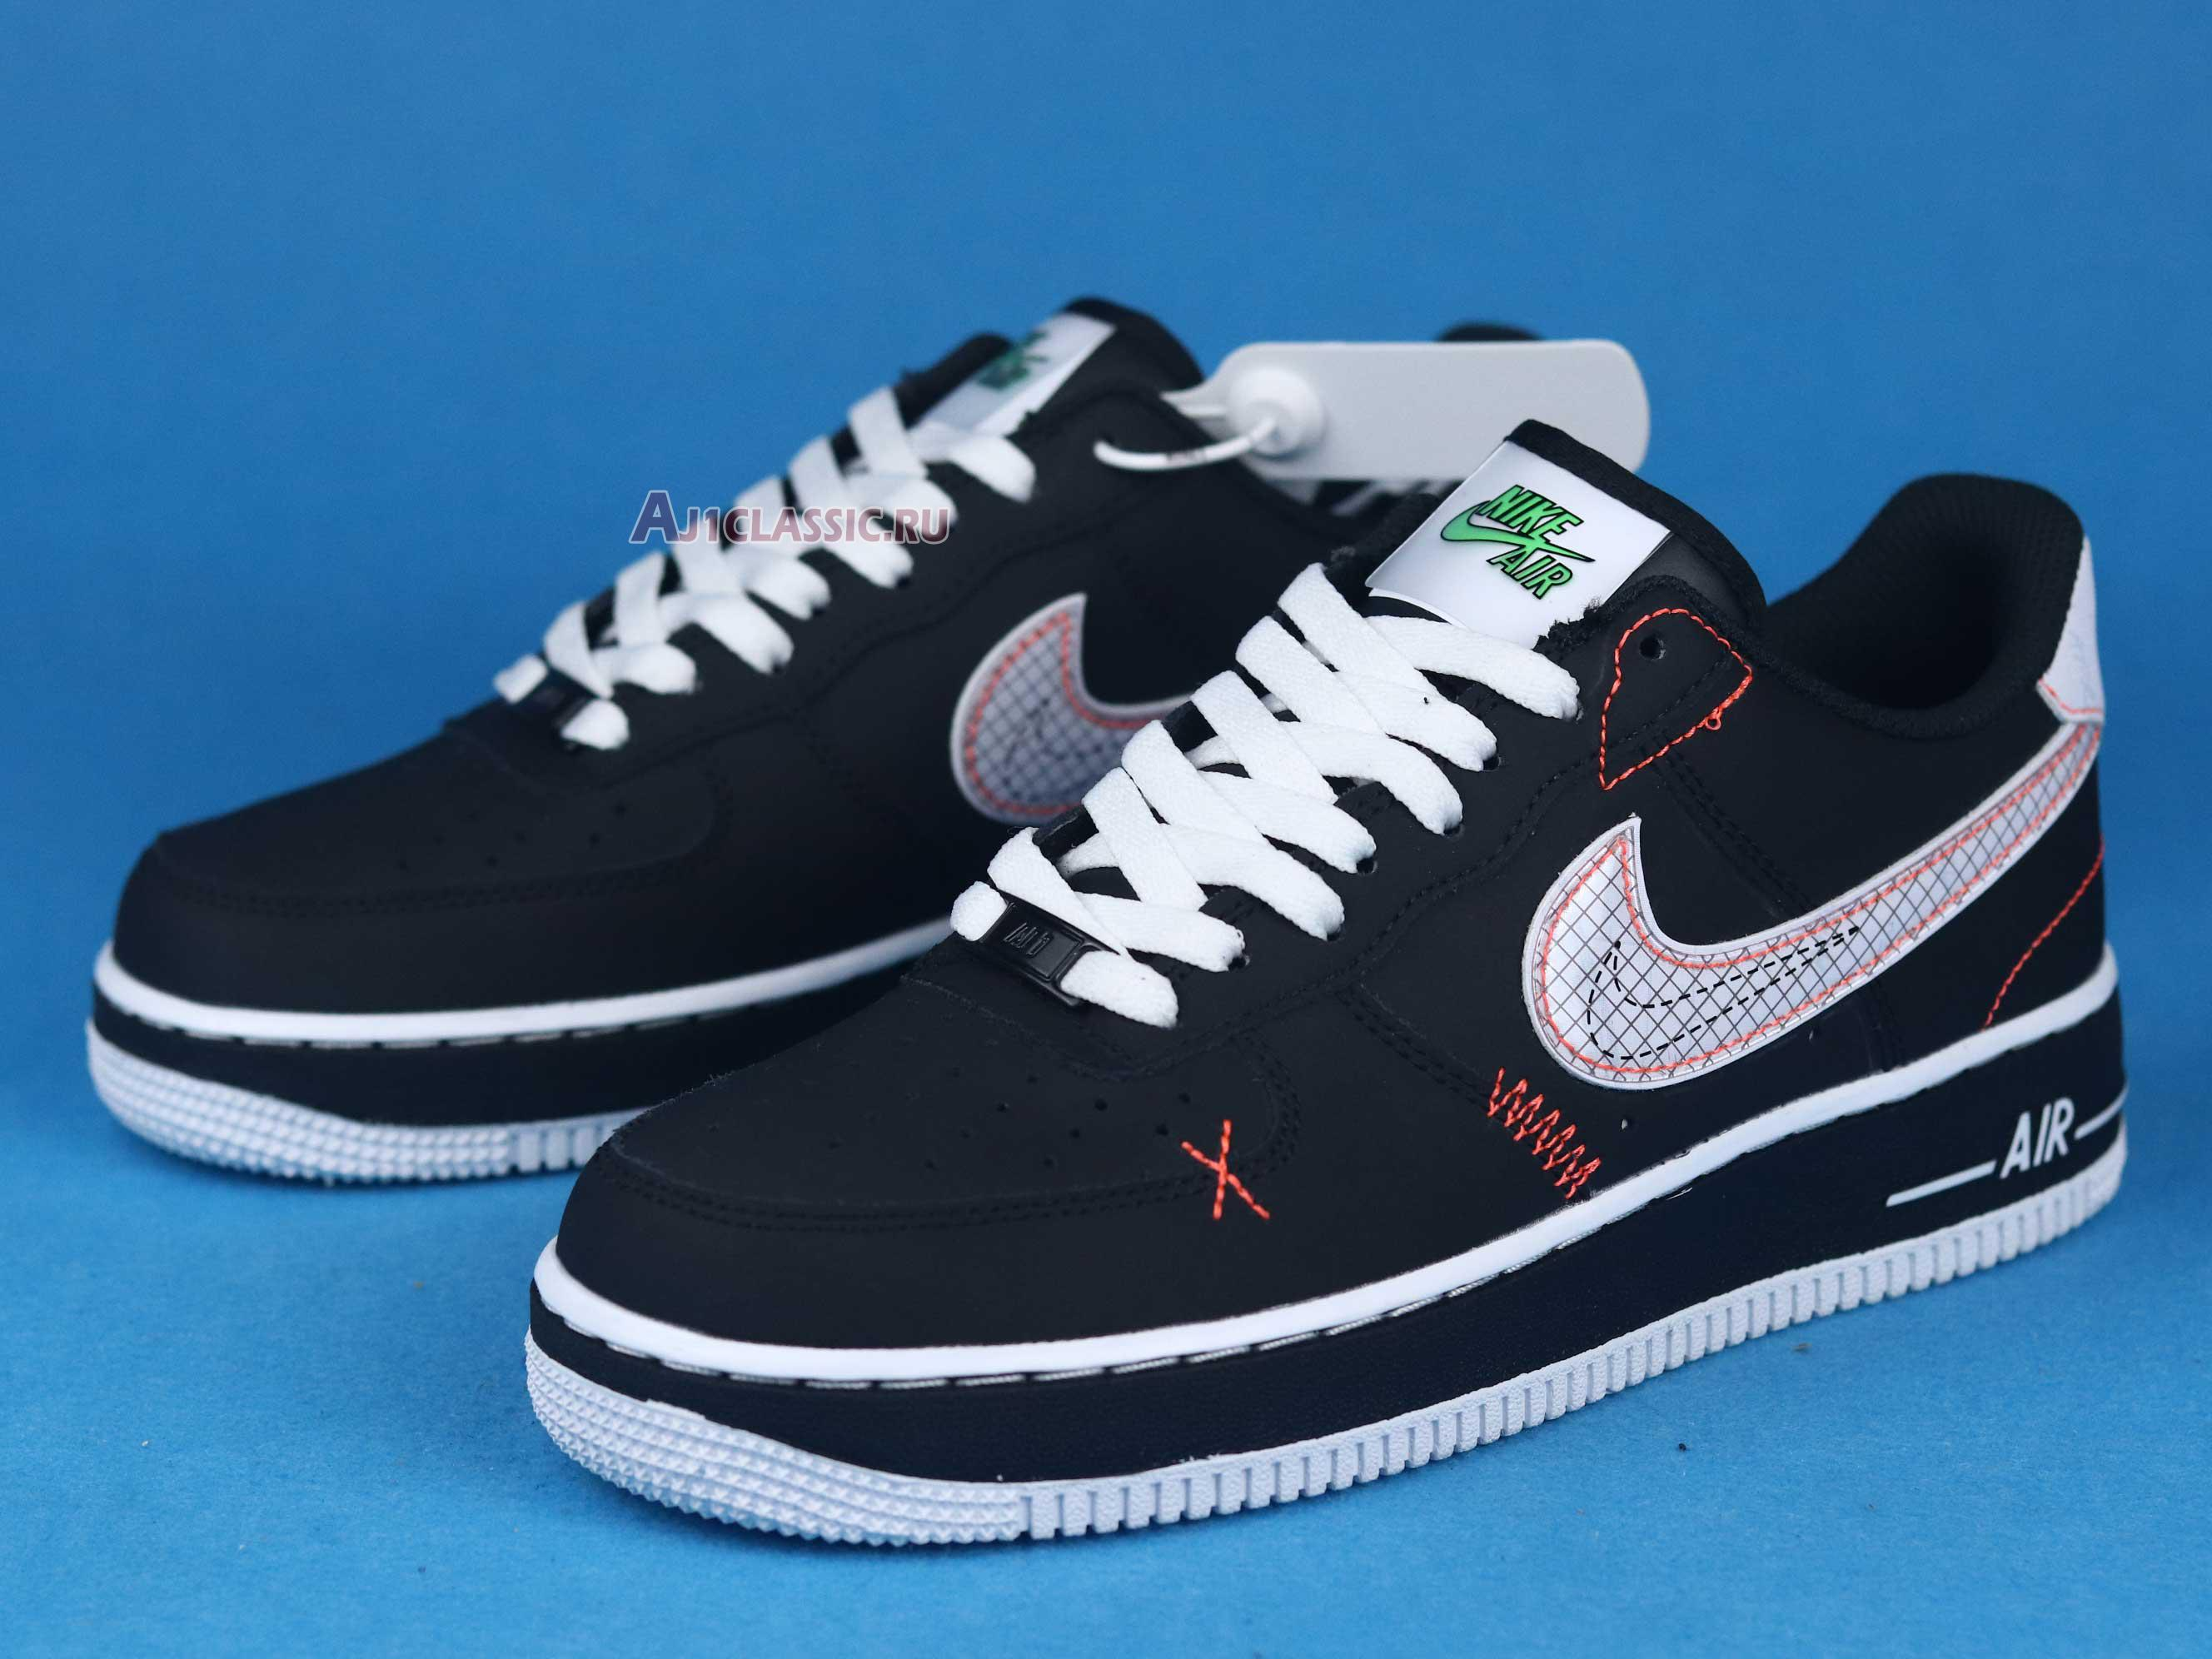 """Nike Air Force 1 Low 07 LV8 """"Exposed Stitching"""" CU6646-001"""